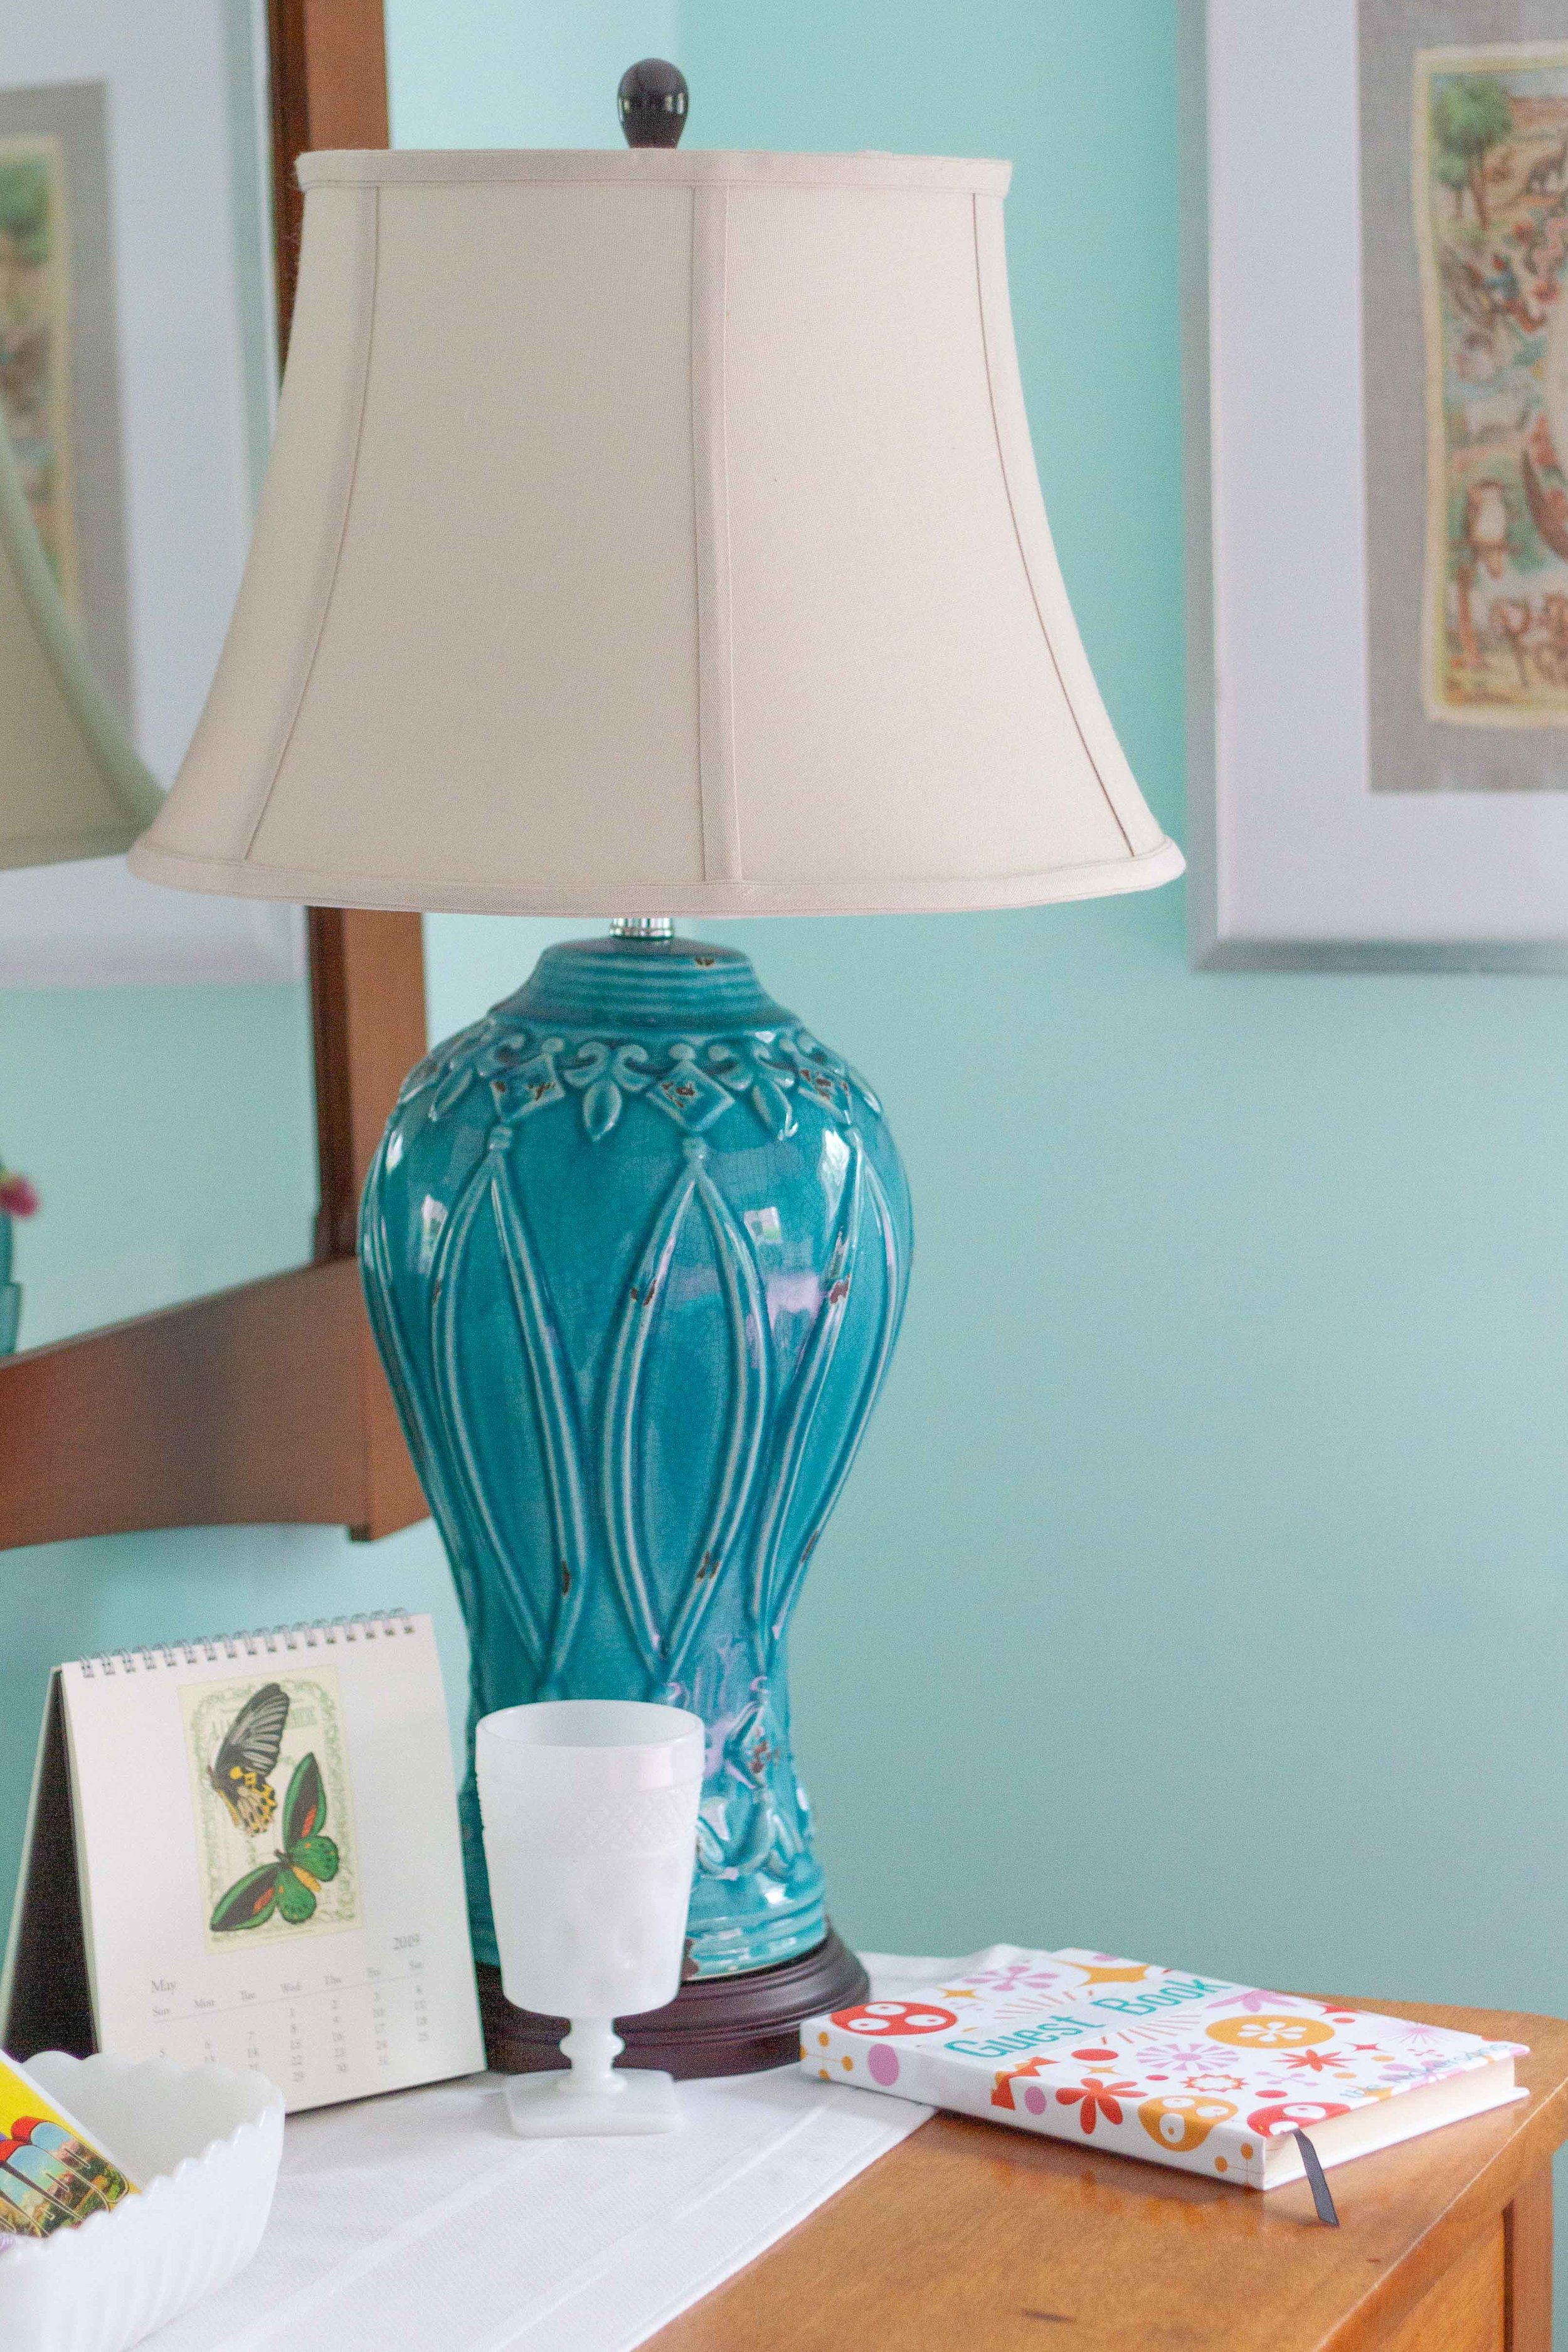 A turquoise porcelain lamp with a classic shade works well on the antique dresser.